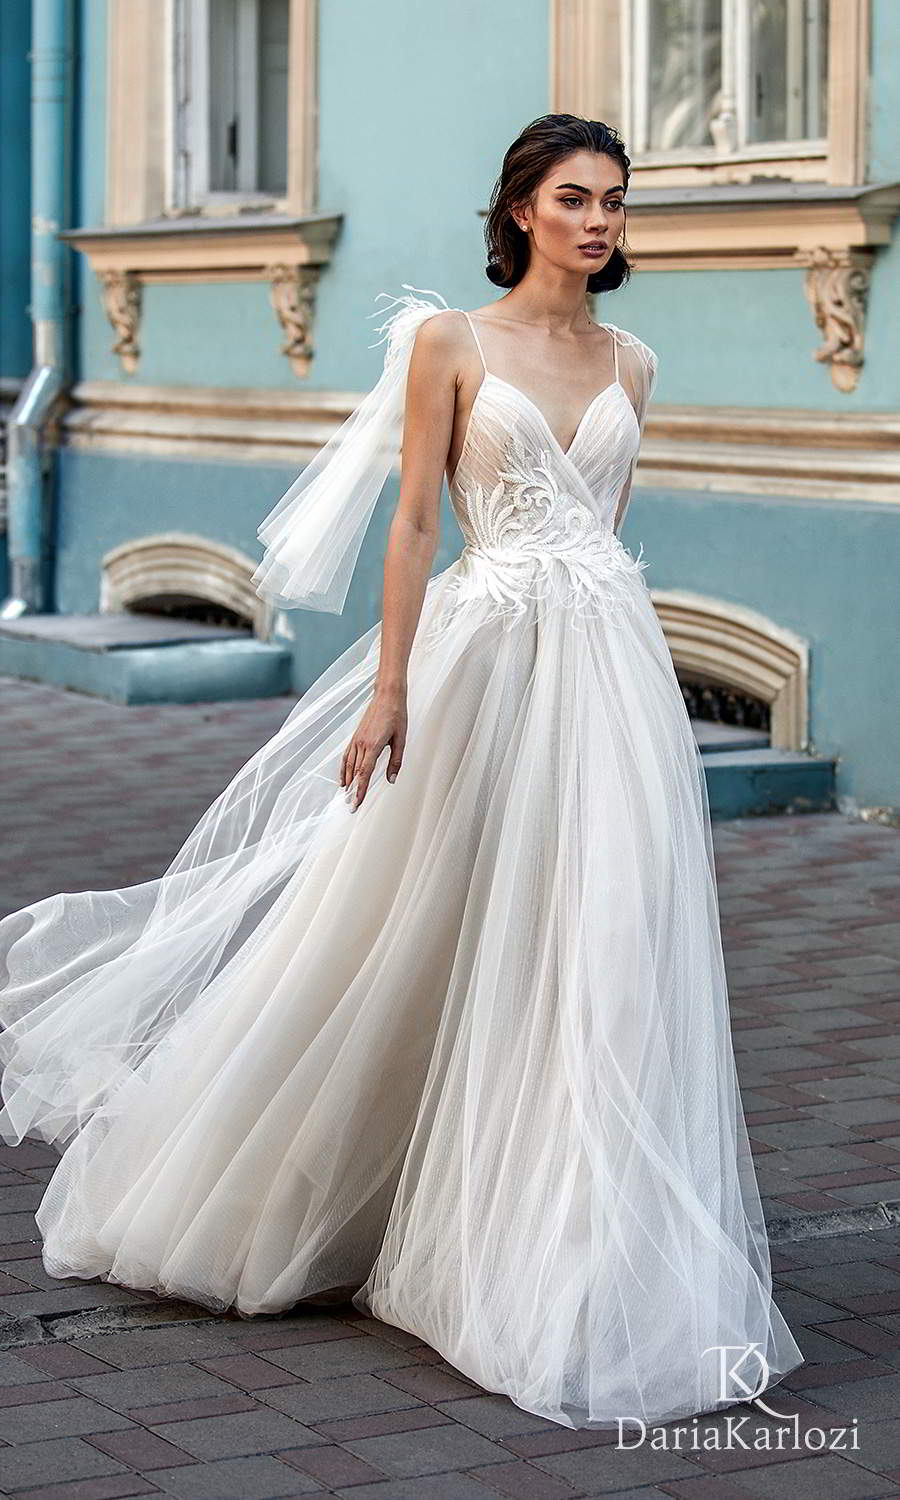 daria karlozi 2021 graceful dream bridal sleeveless thin straps surplice v neckline embellished ruched bodice a line ball gown wedding dress (embrace) mv